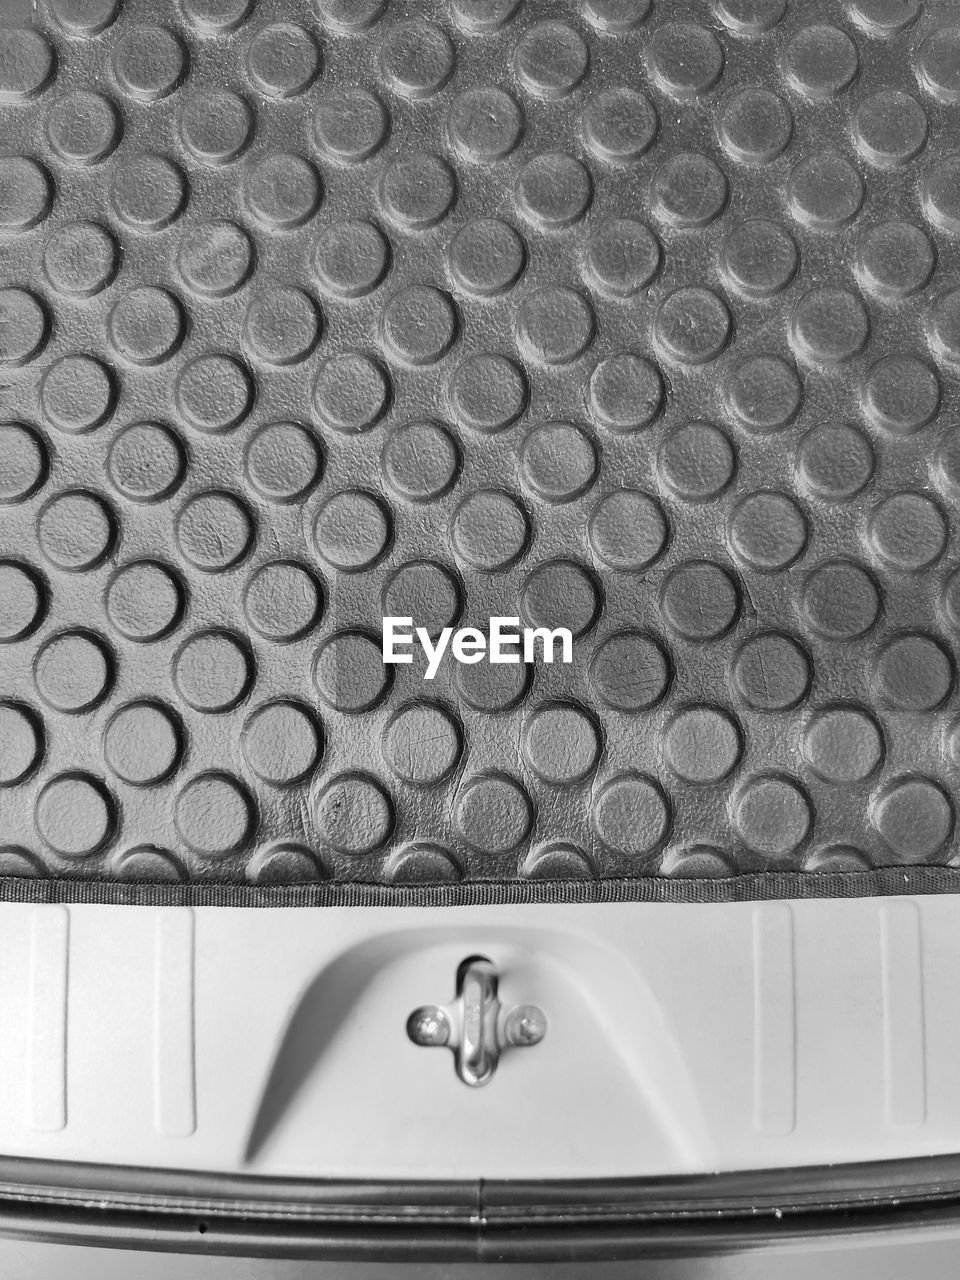 indoors, no people, close-up, metal, pattern, bathroom, geometric shape, shape, circle, household equipment, silver colored, high angle view, reflection, steel, domestic room, sink, mirror, domestic bathroom, hygiene, repetition, luxury, clean